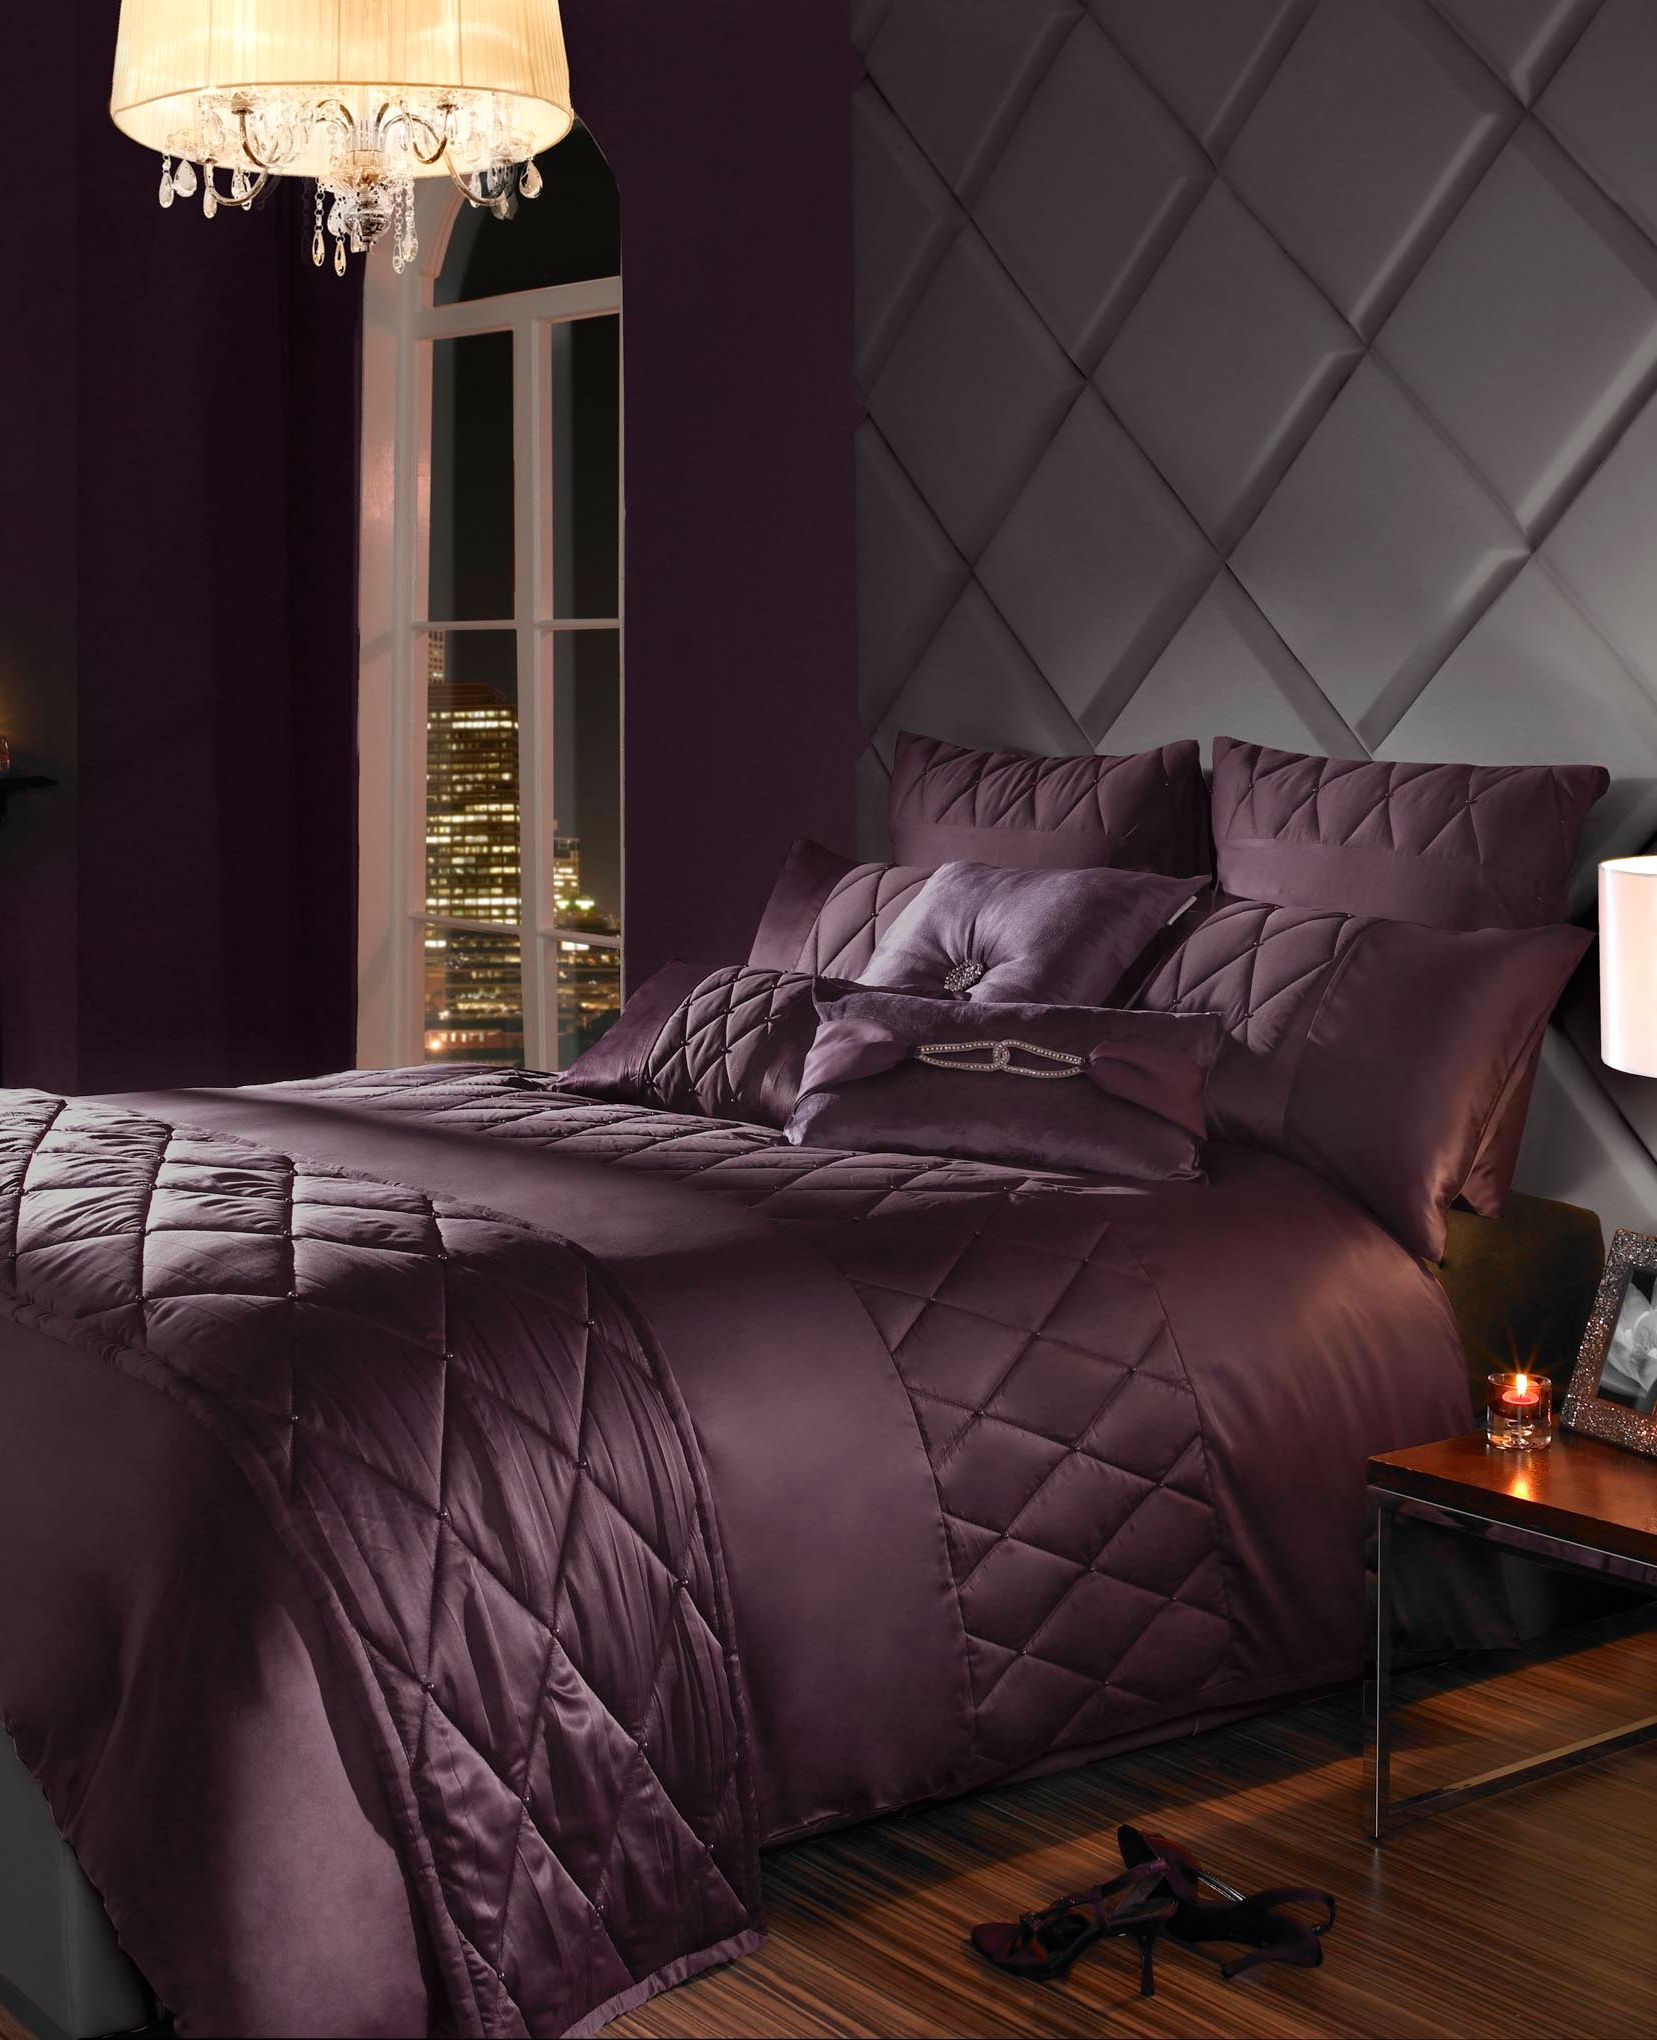 Liverna single duvet cover damson